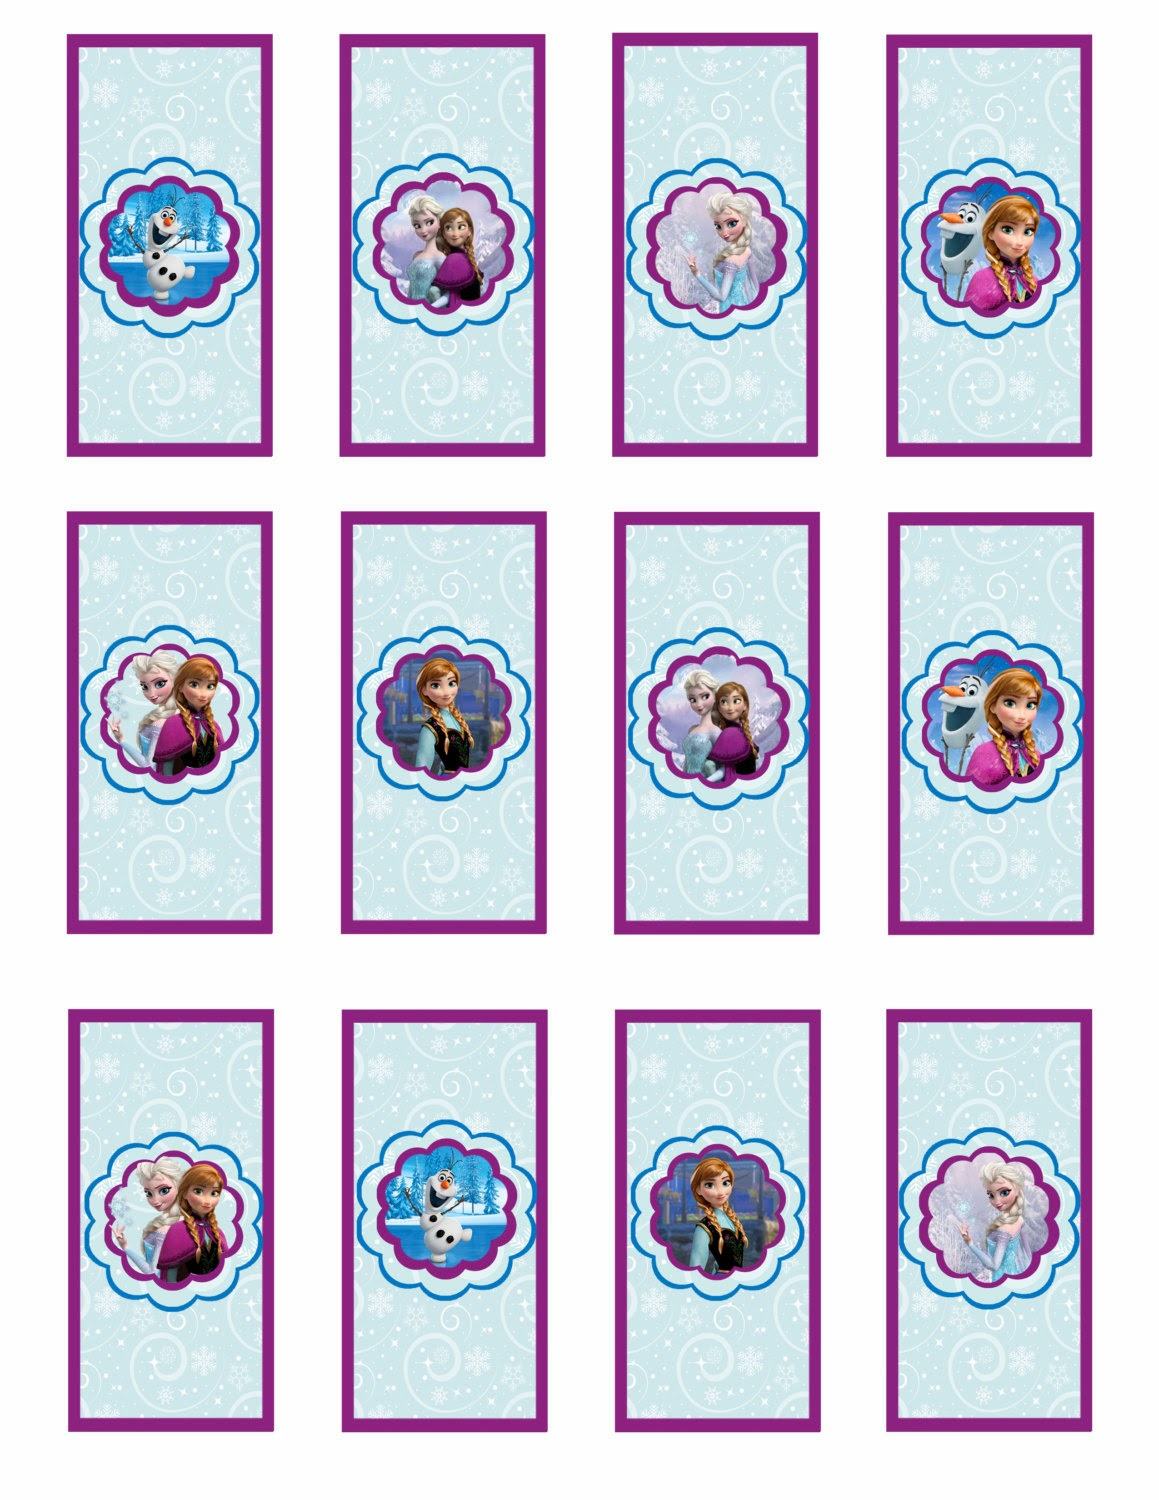 photograph relating to Frozen Printable Labels known as No cost Printable Frozen Labels. - Oh My Fiesta! within english